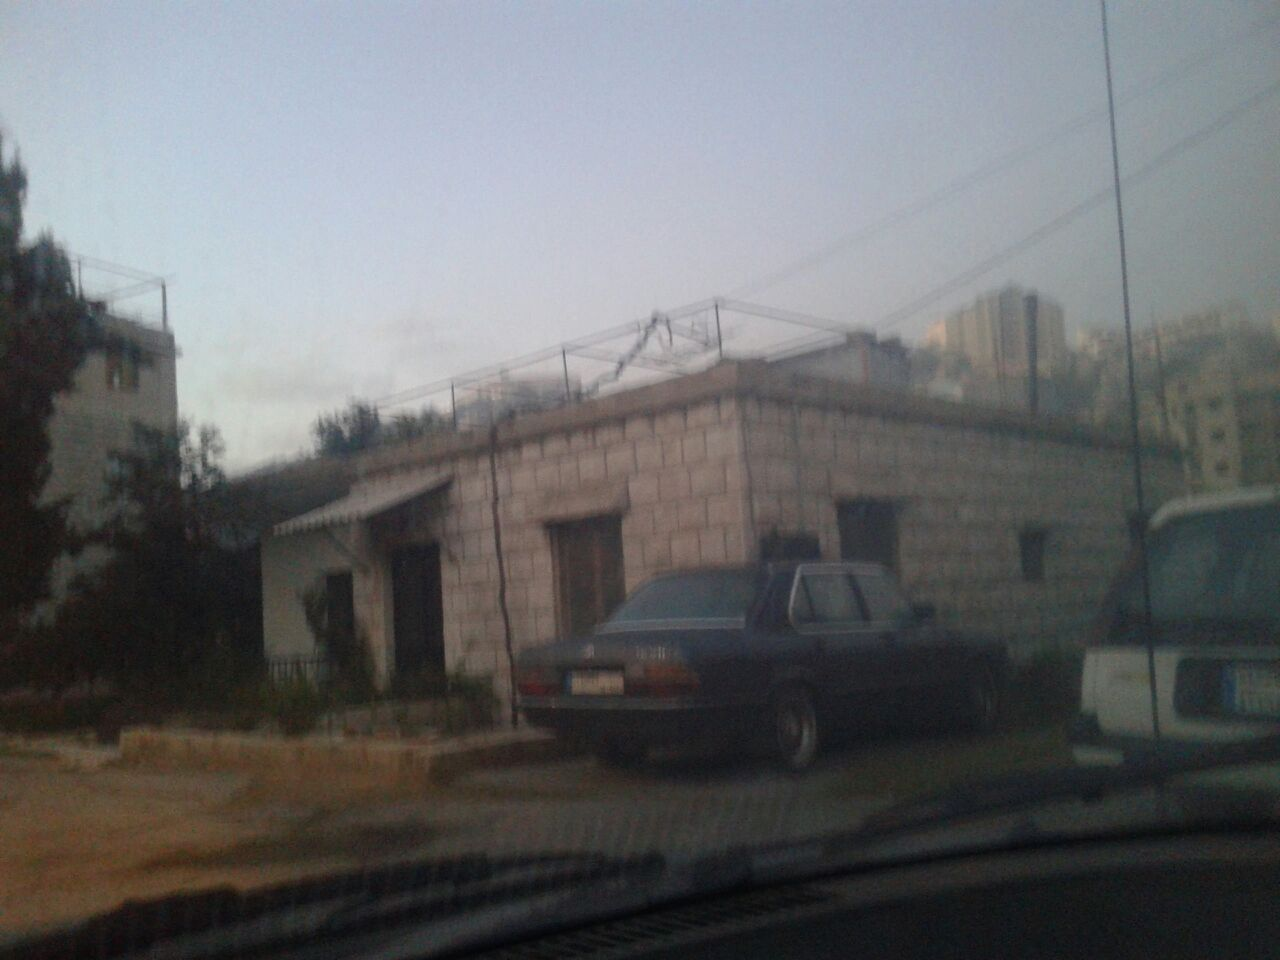 Old House For Sale In Faitroun Lebanon,real Estate Lebanon, Real Estate  Faitroun,